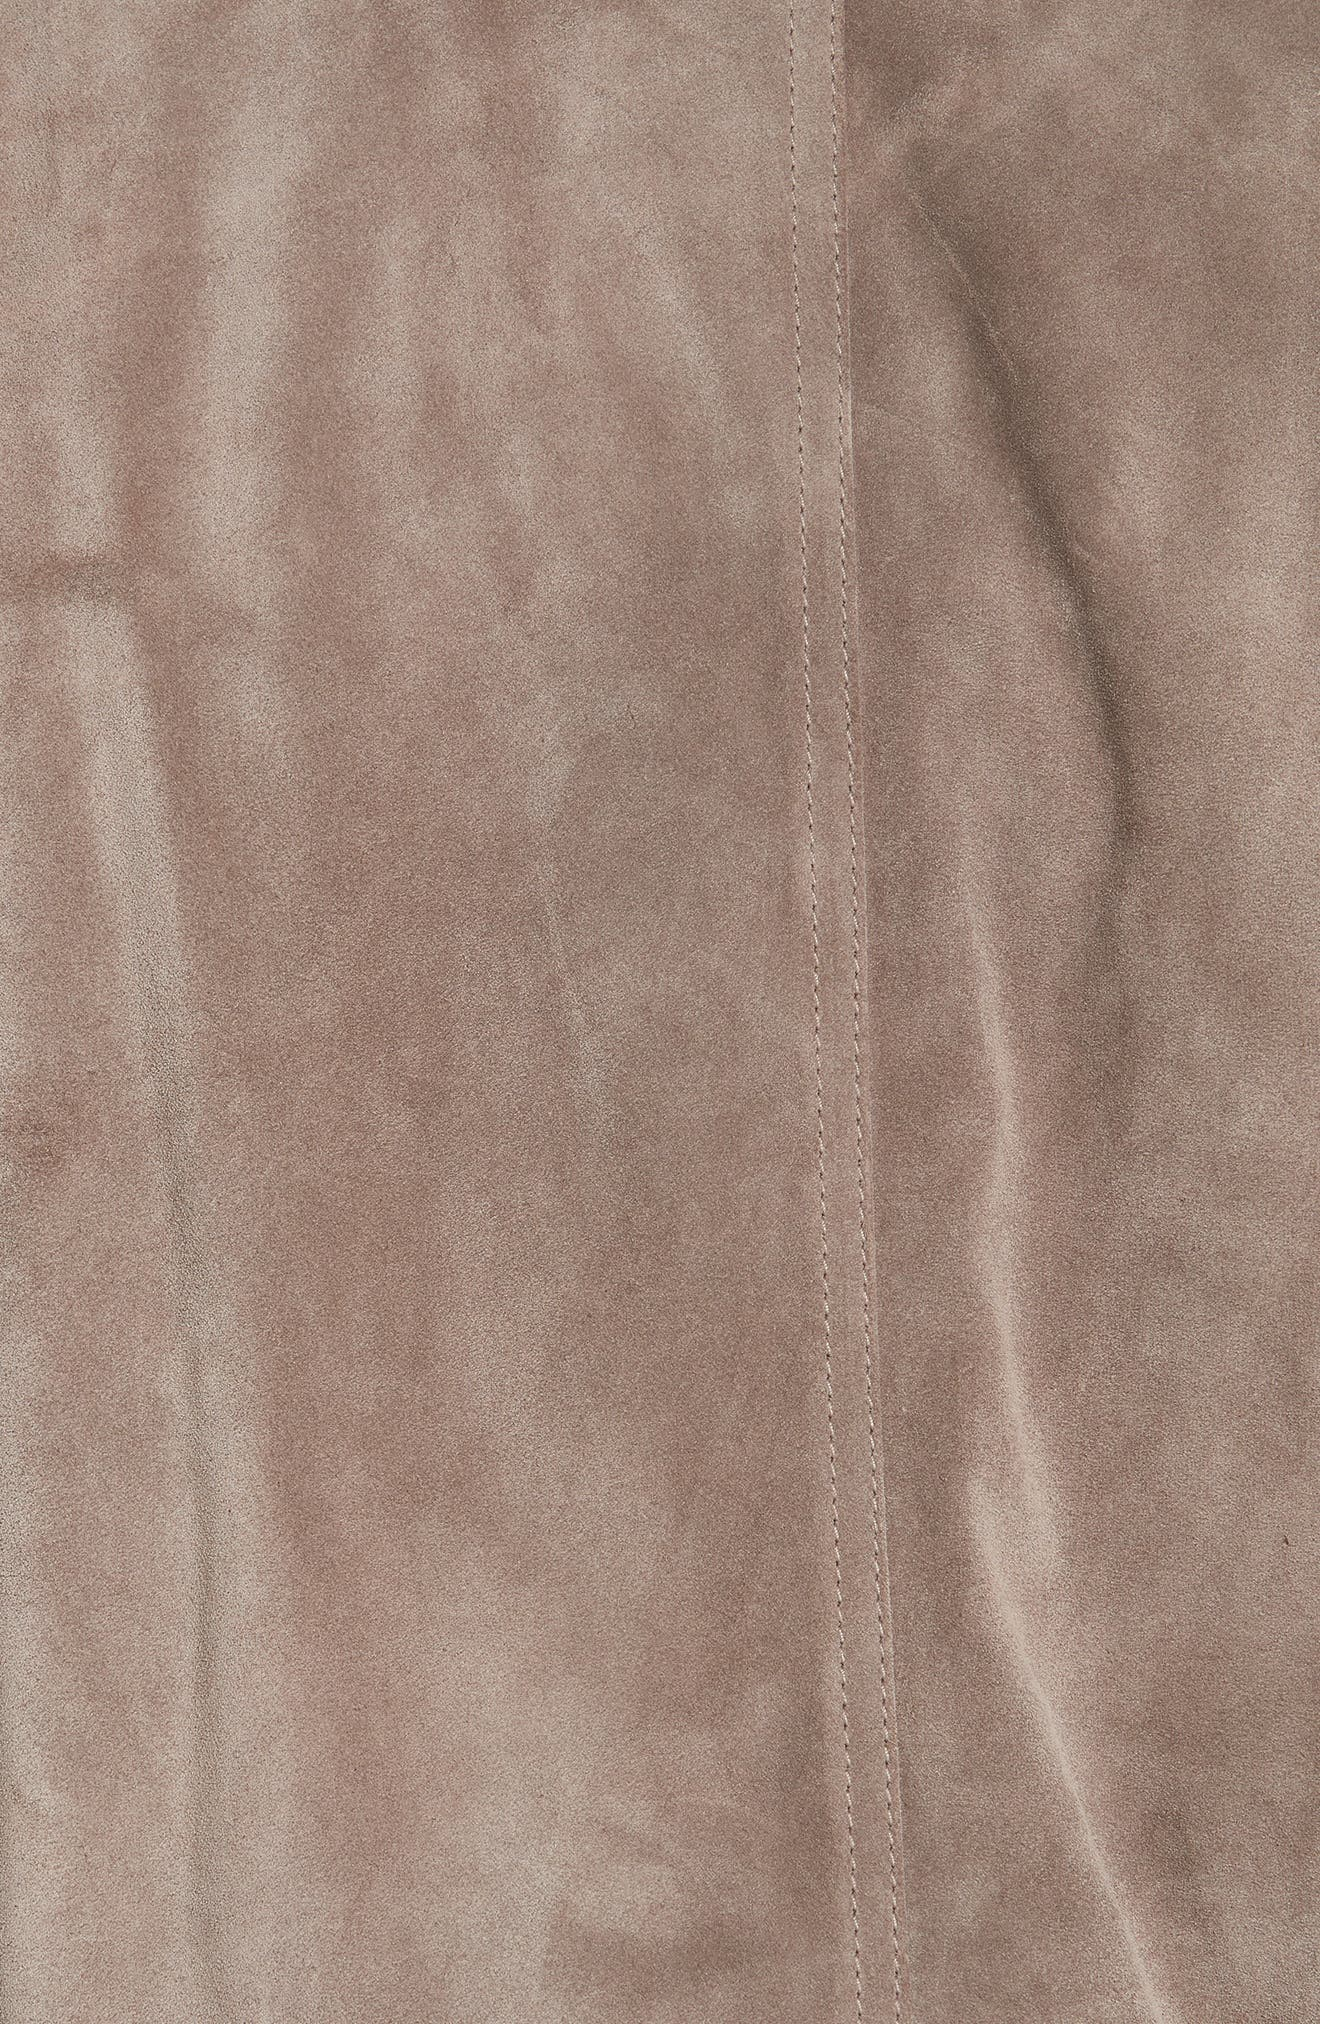 Winswell Suede Jacket,                             Alternate thumbnail 6, color,                             DRIFTWOOD